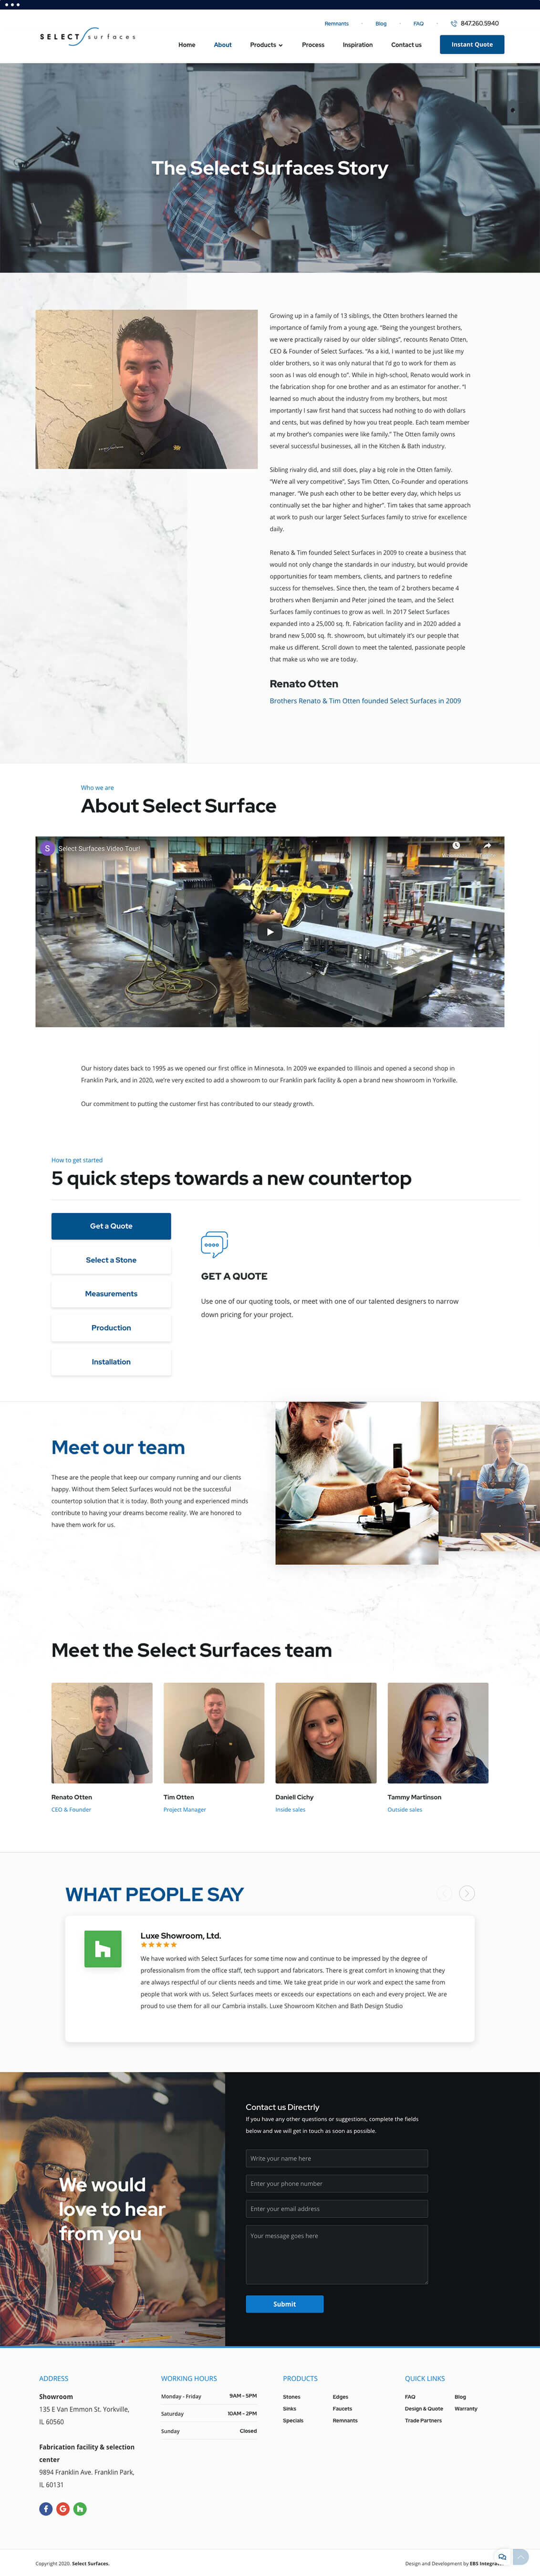 SelectSurfaces home page